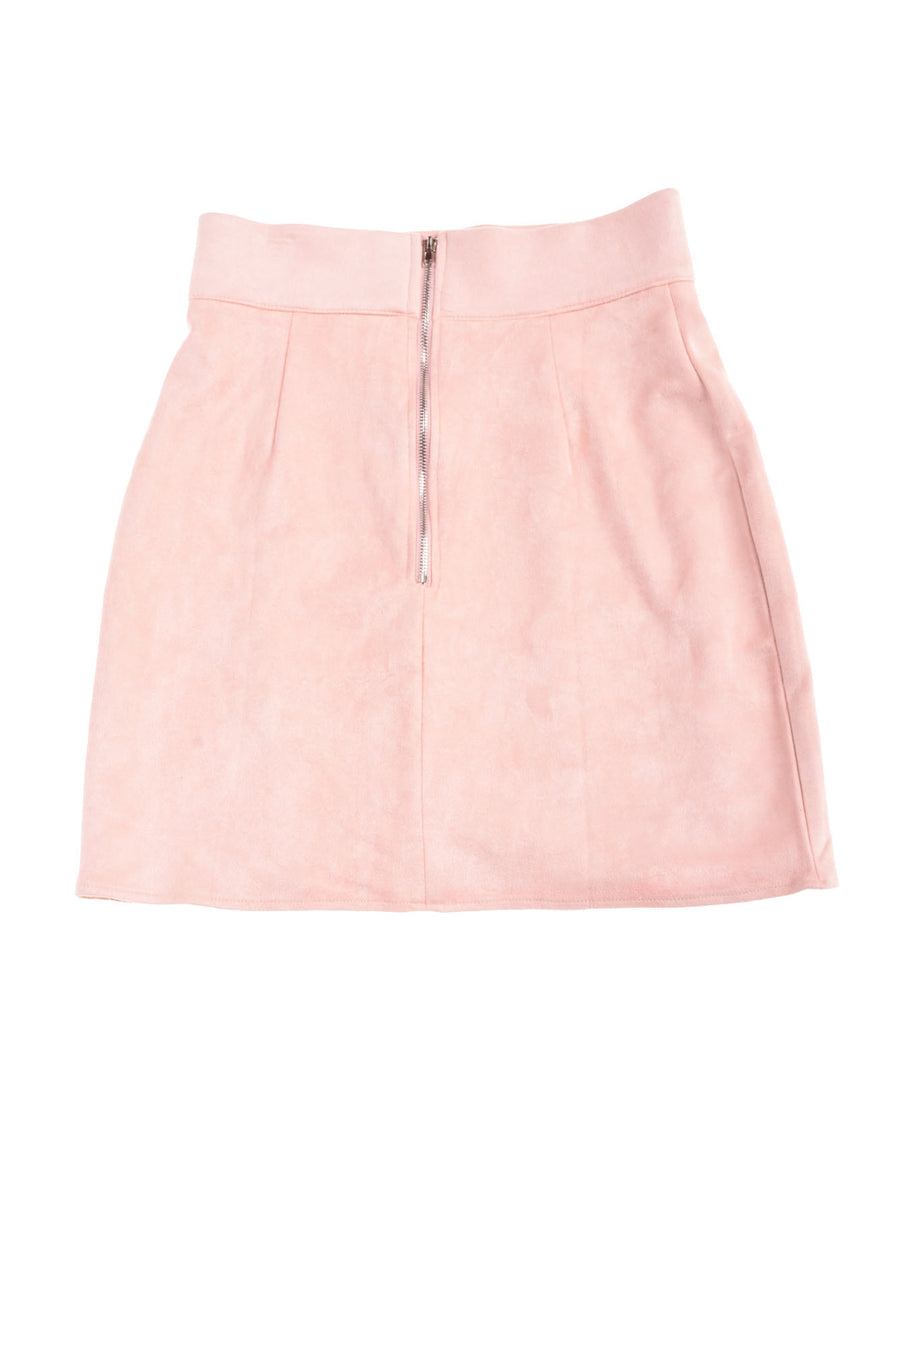 NEW Missguided Women's Skirt 2 Pink